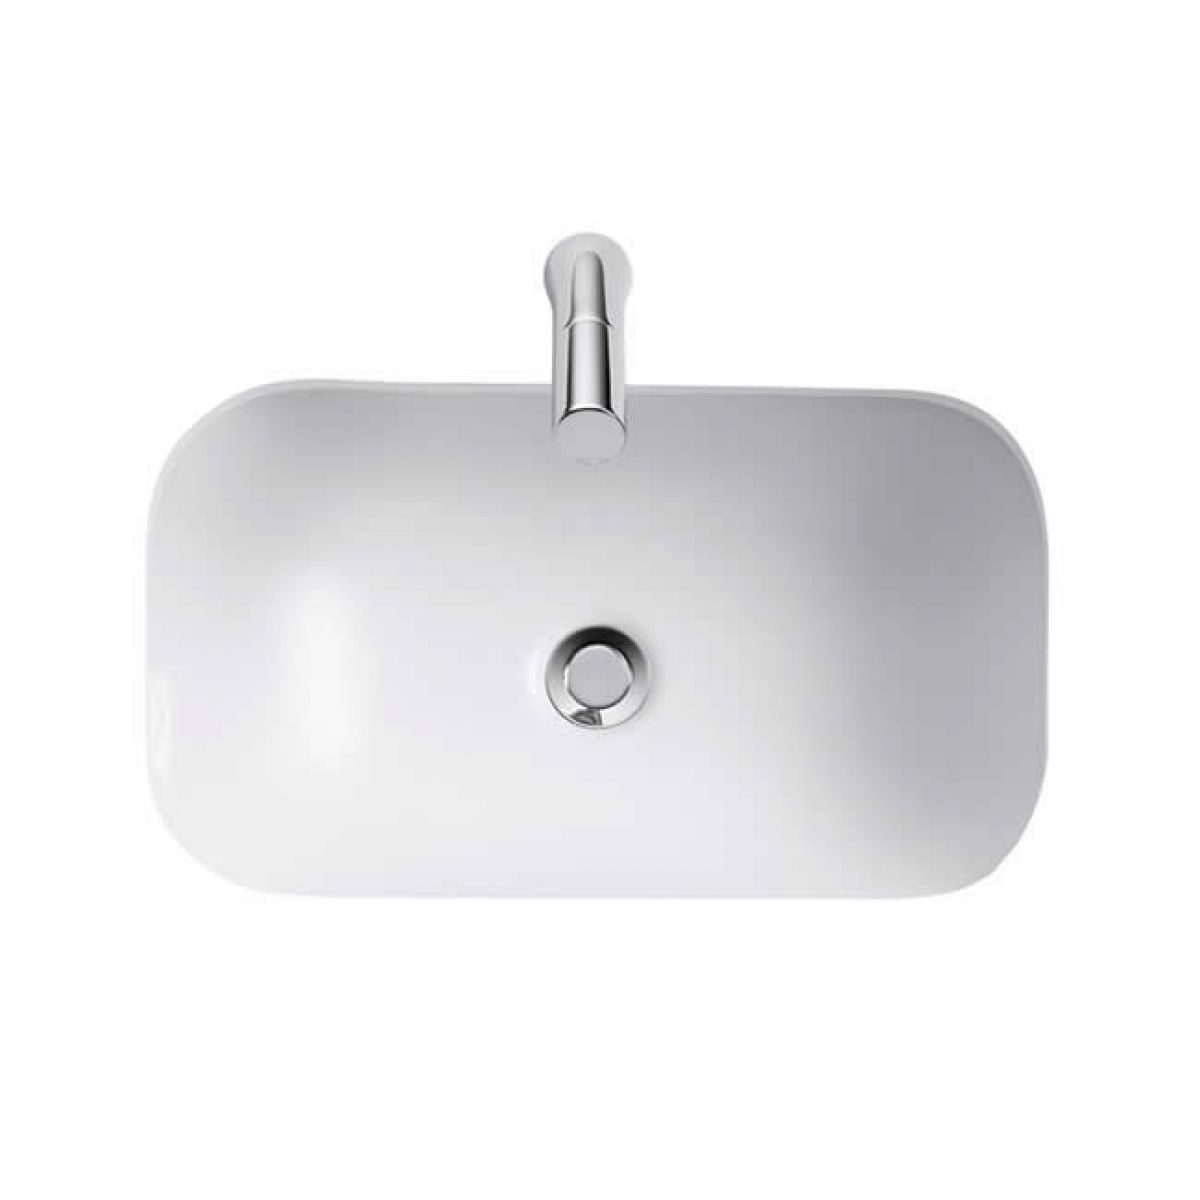 Armitage Shanks Contour 21 Under Countertop Basin